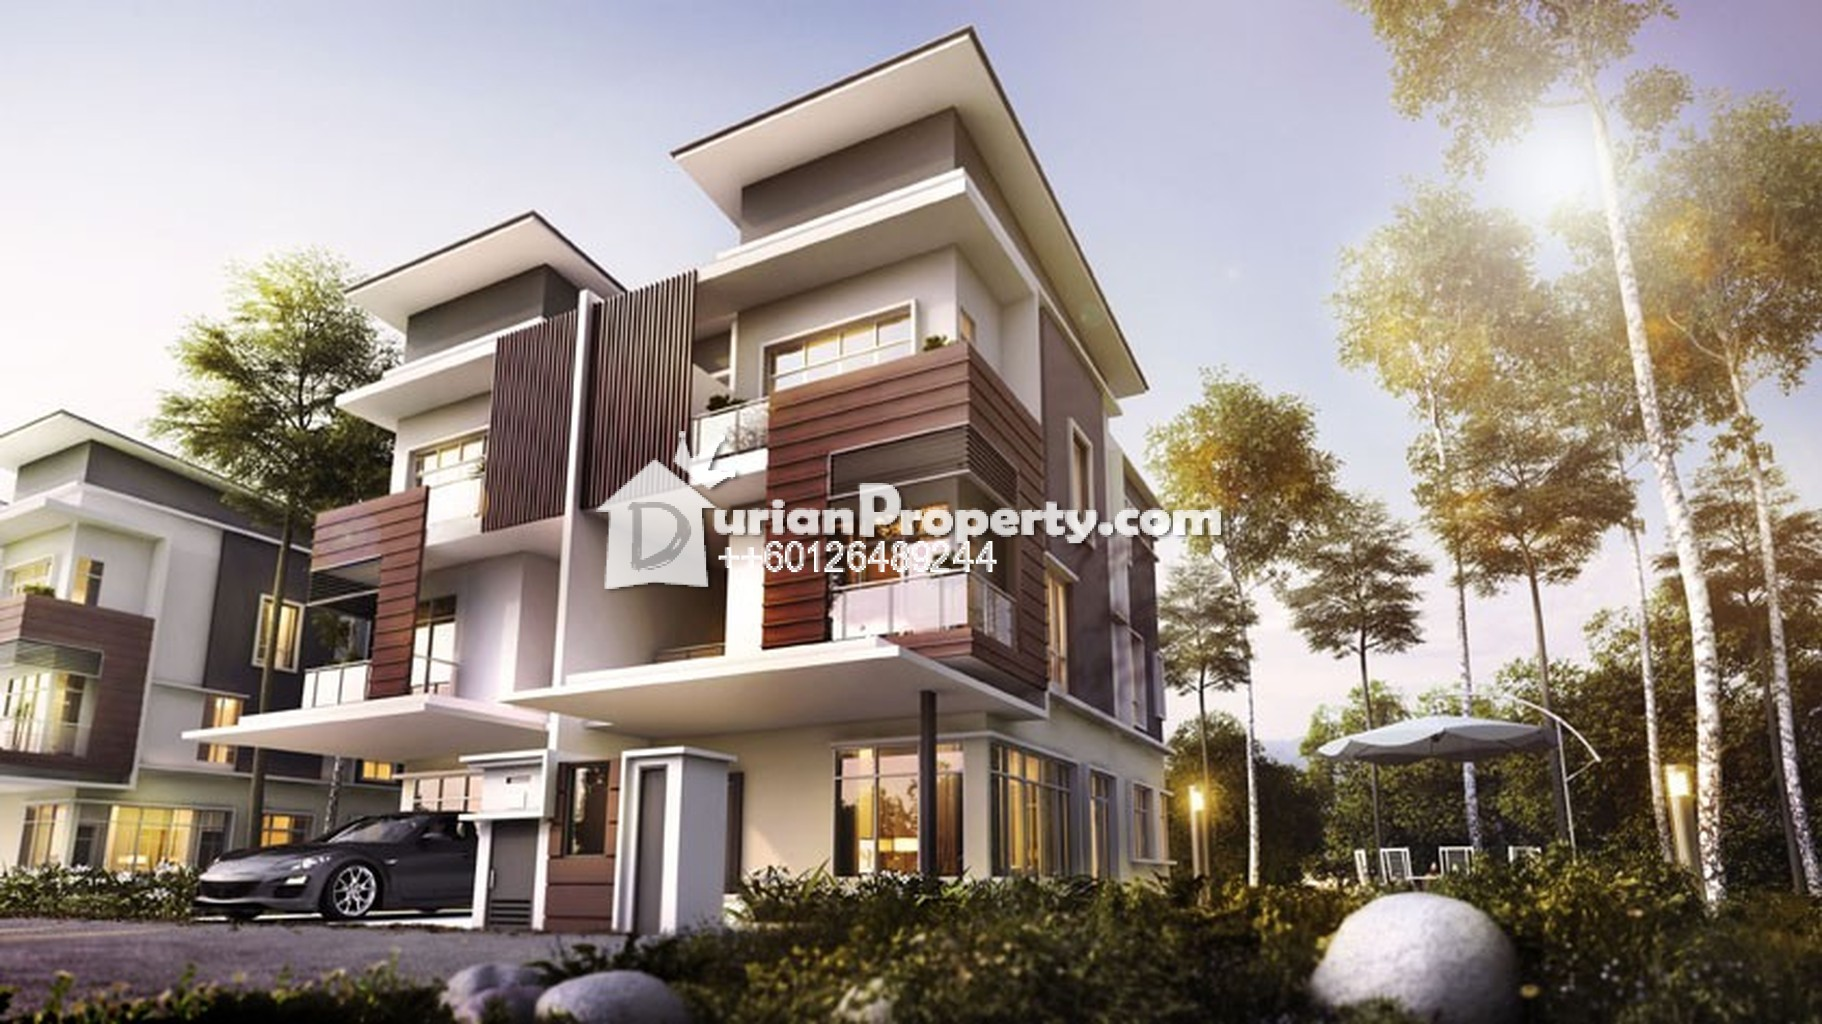 Terrace house for sale at damansara city residency for The terrace land and house